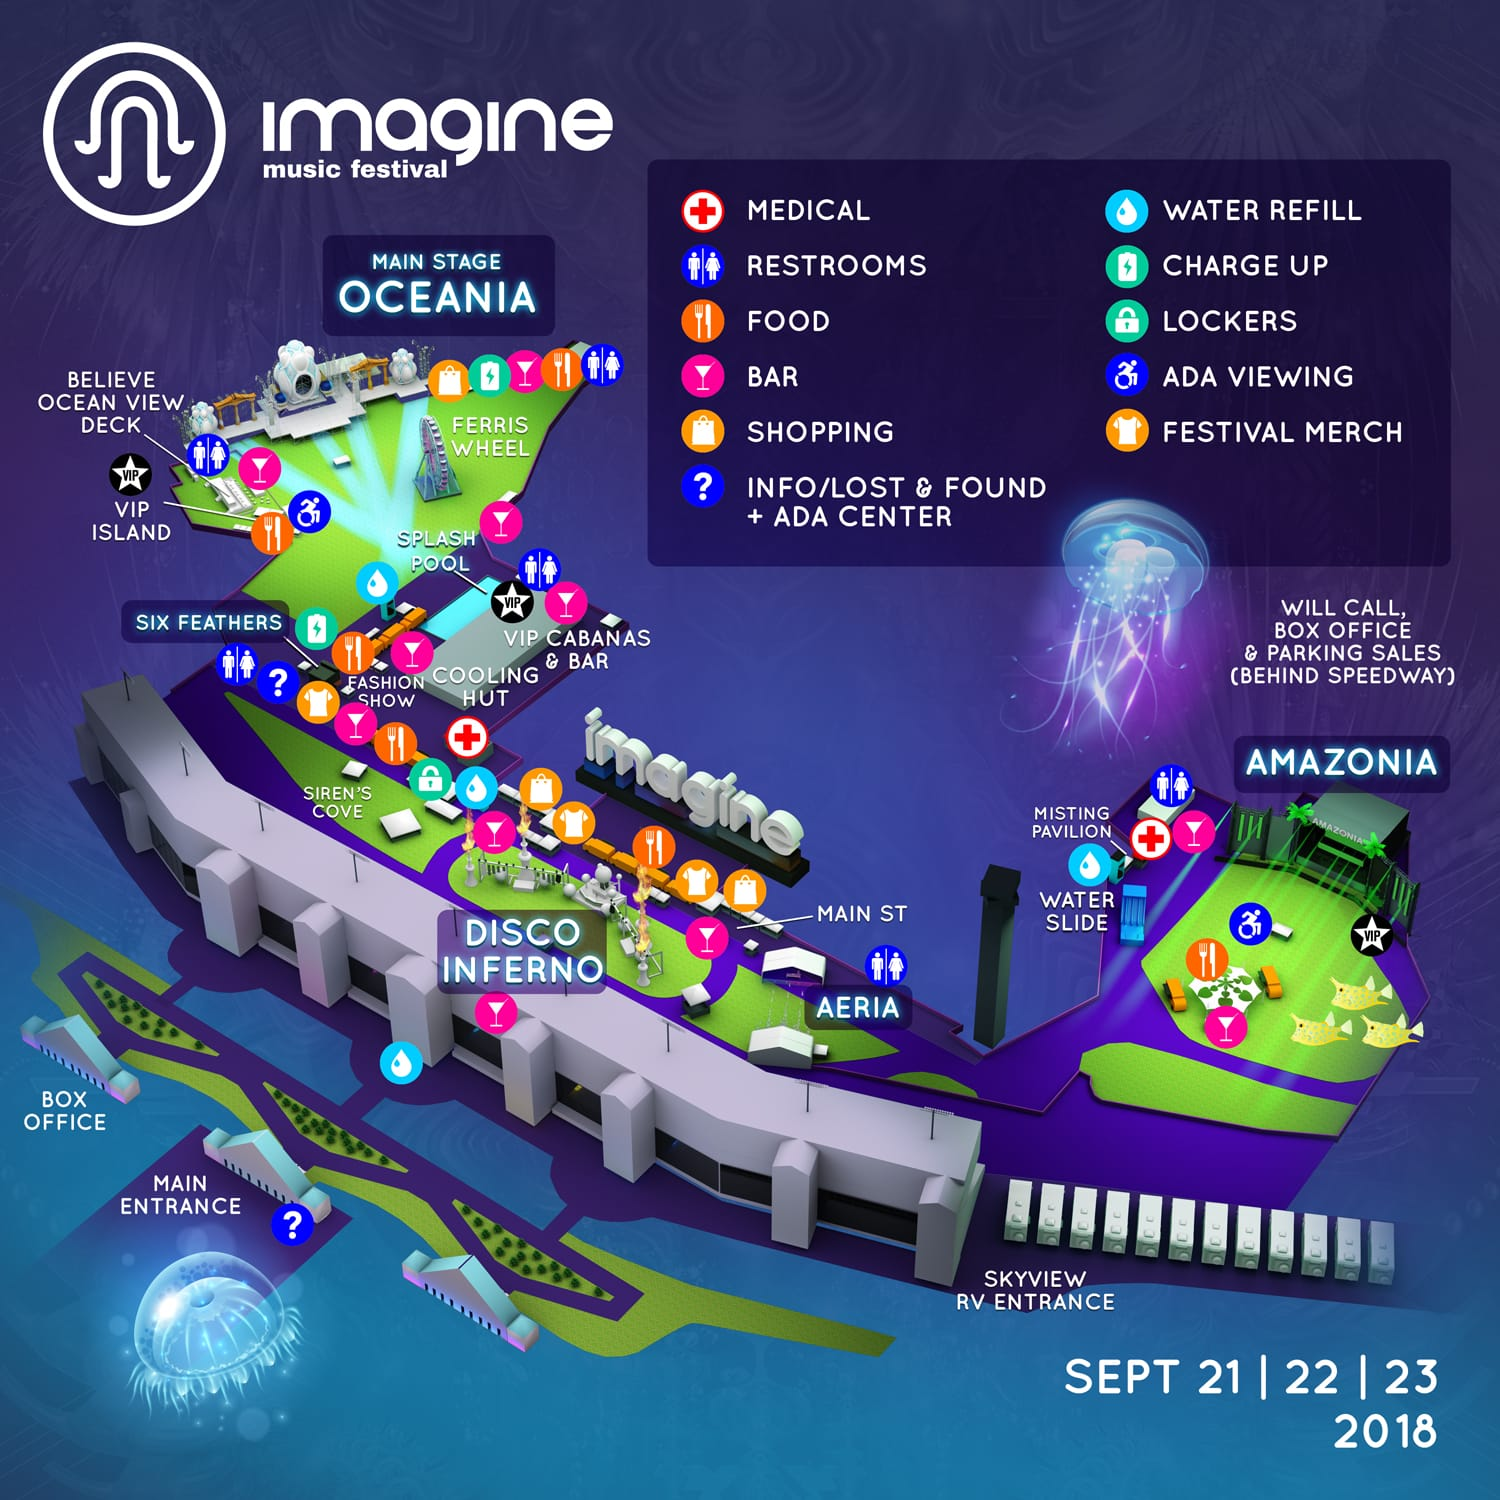 Imagine Music Festival 2018 Map - Imagine 2018 Festival & Camping Map